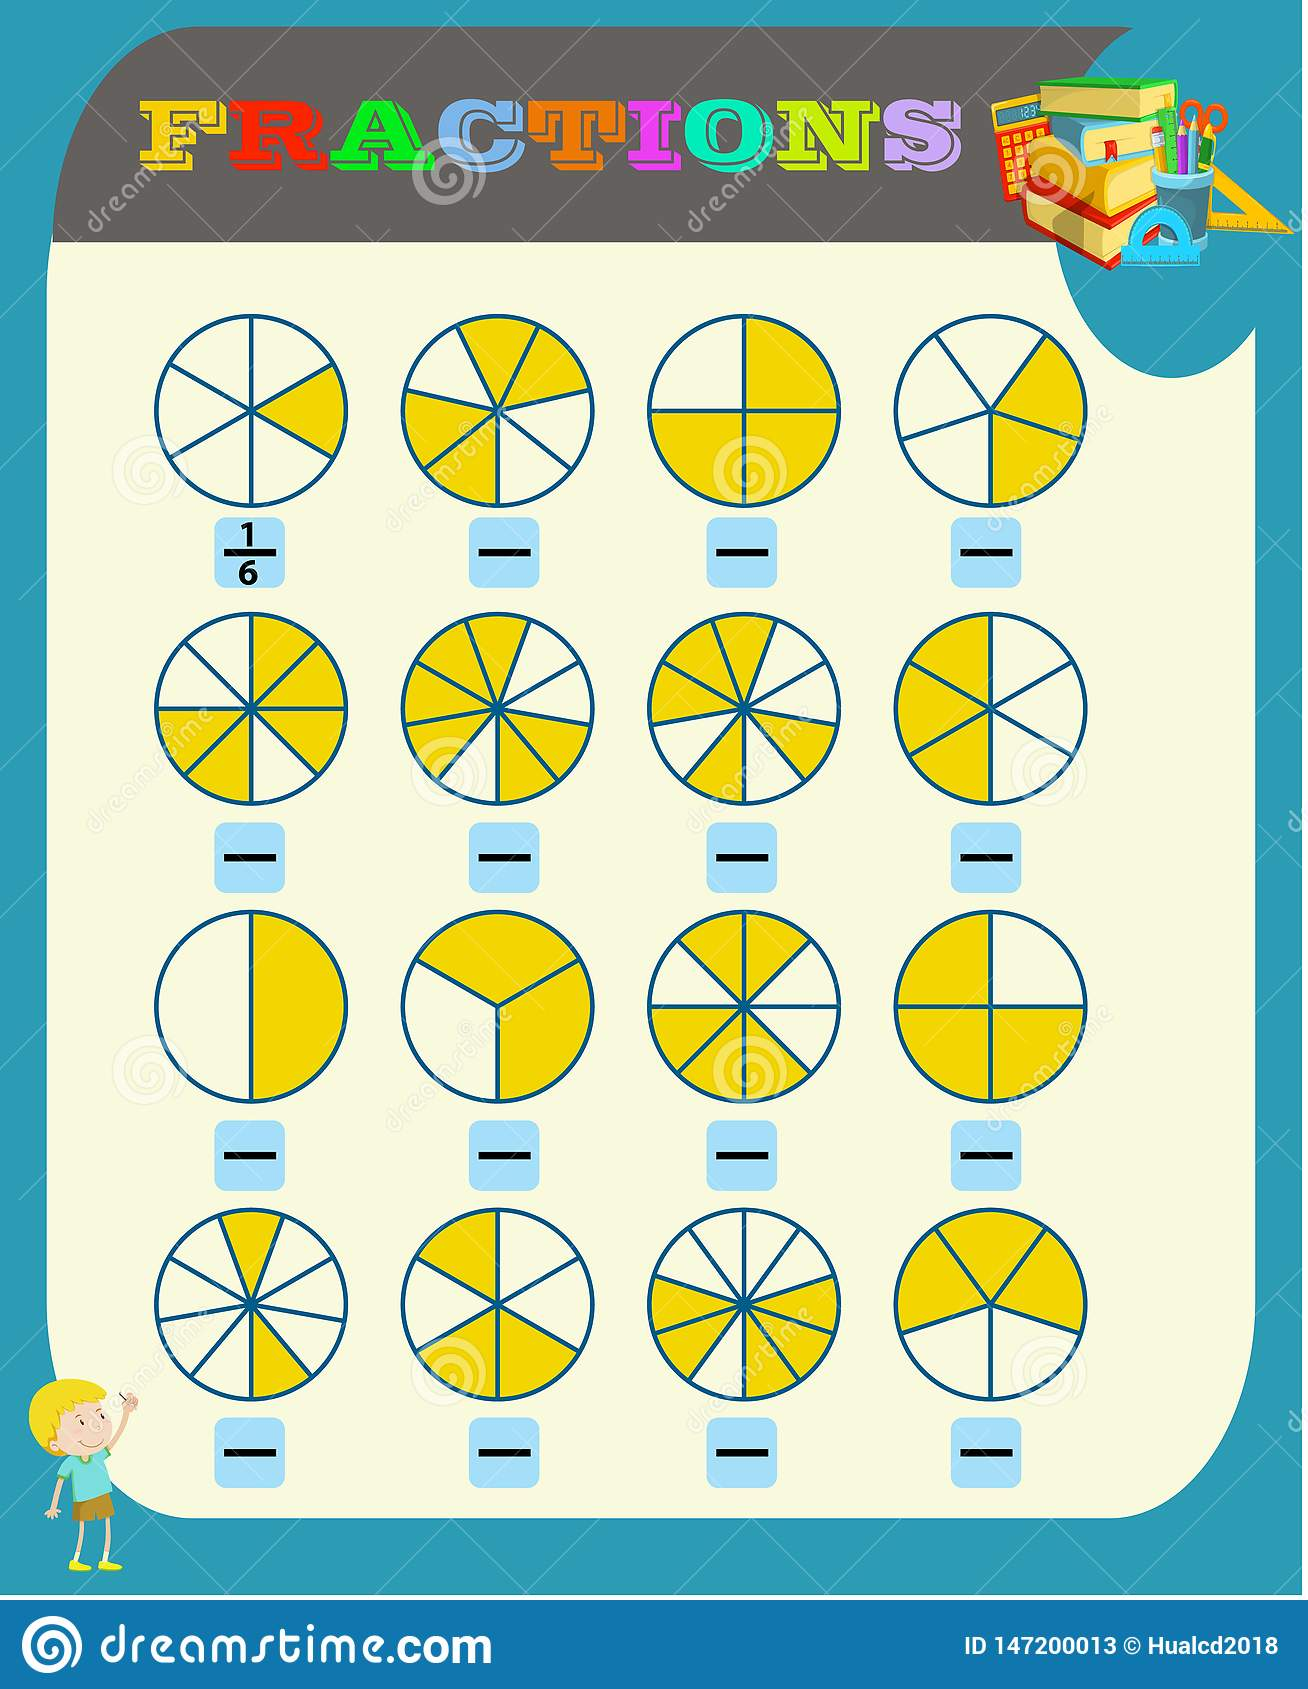 - Circle The Correct Fraction, Mathematics, Math Worksheet For Kids